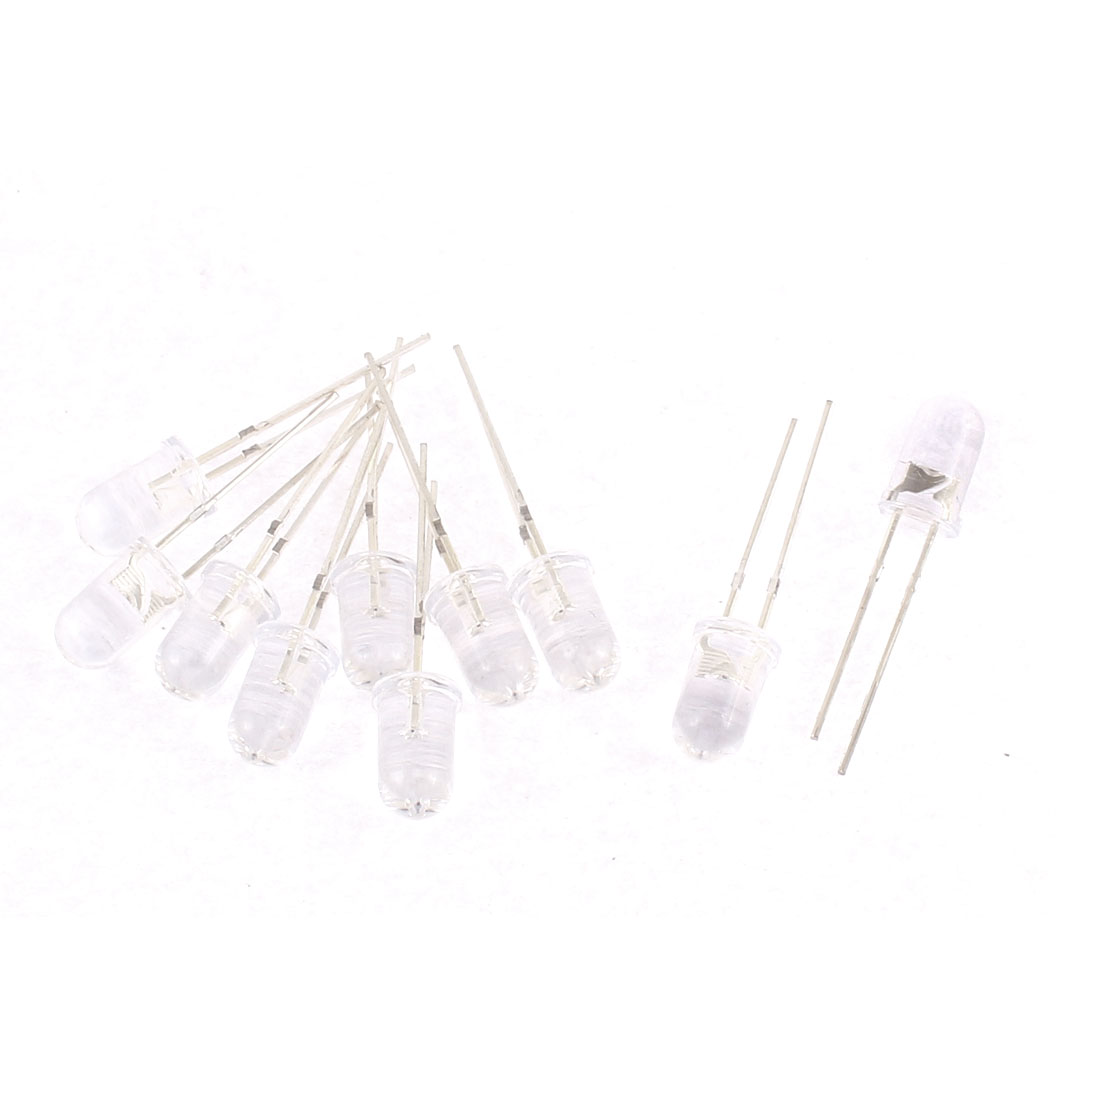 10pcs 2 Terminals Emitting Diode Emittor LEDs Bulds White Light